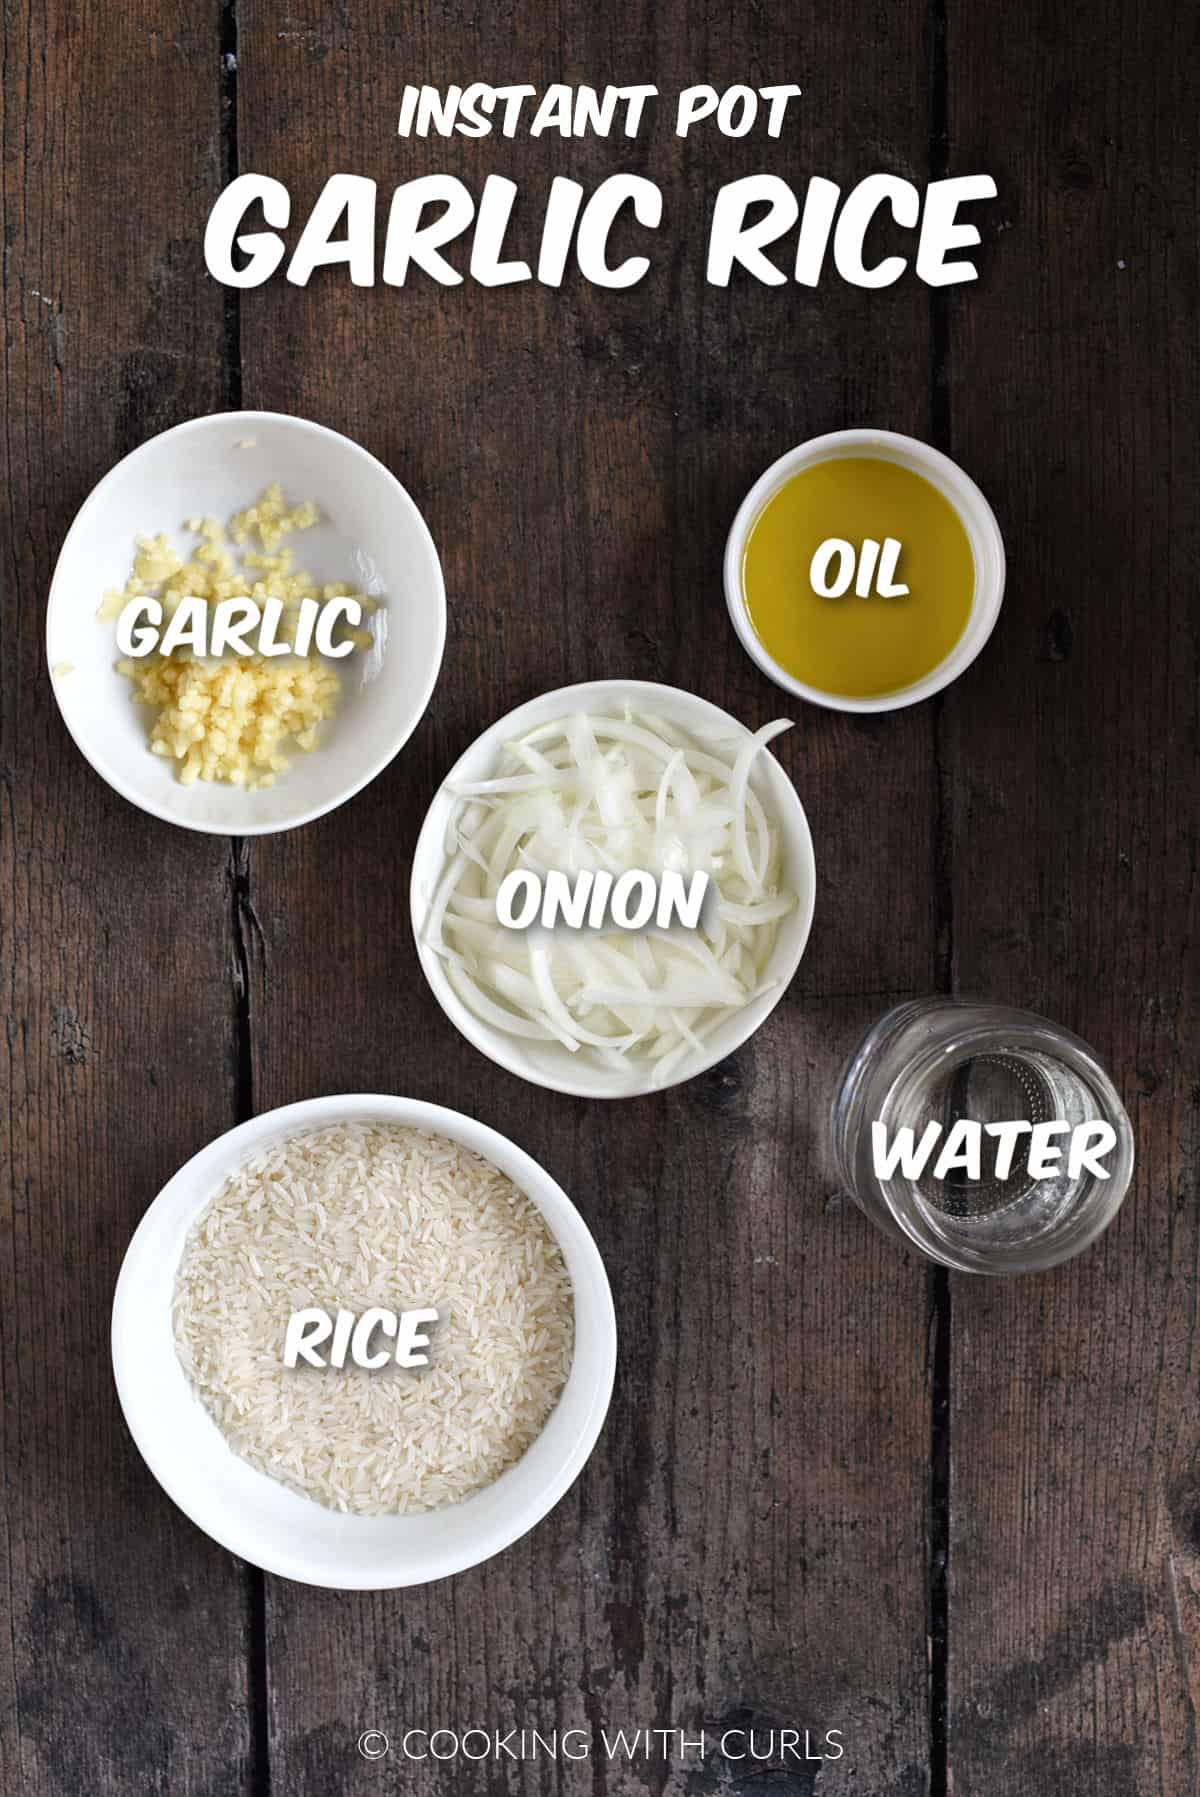 Minced garlic, sliced onion, olive oil, water, and rice in bowls.